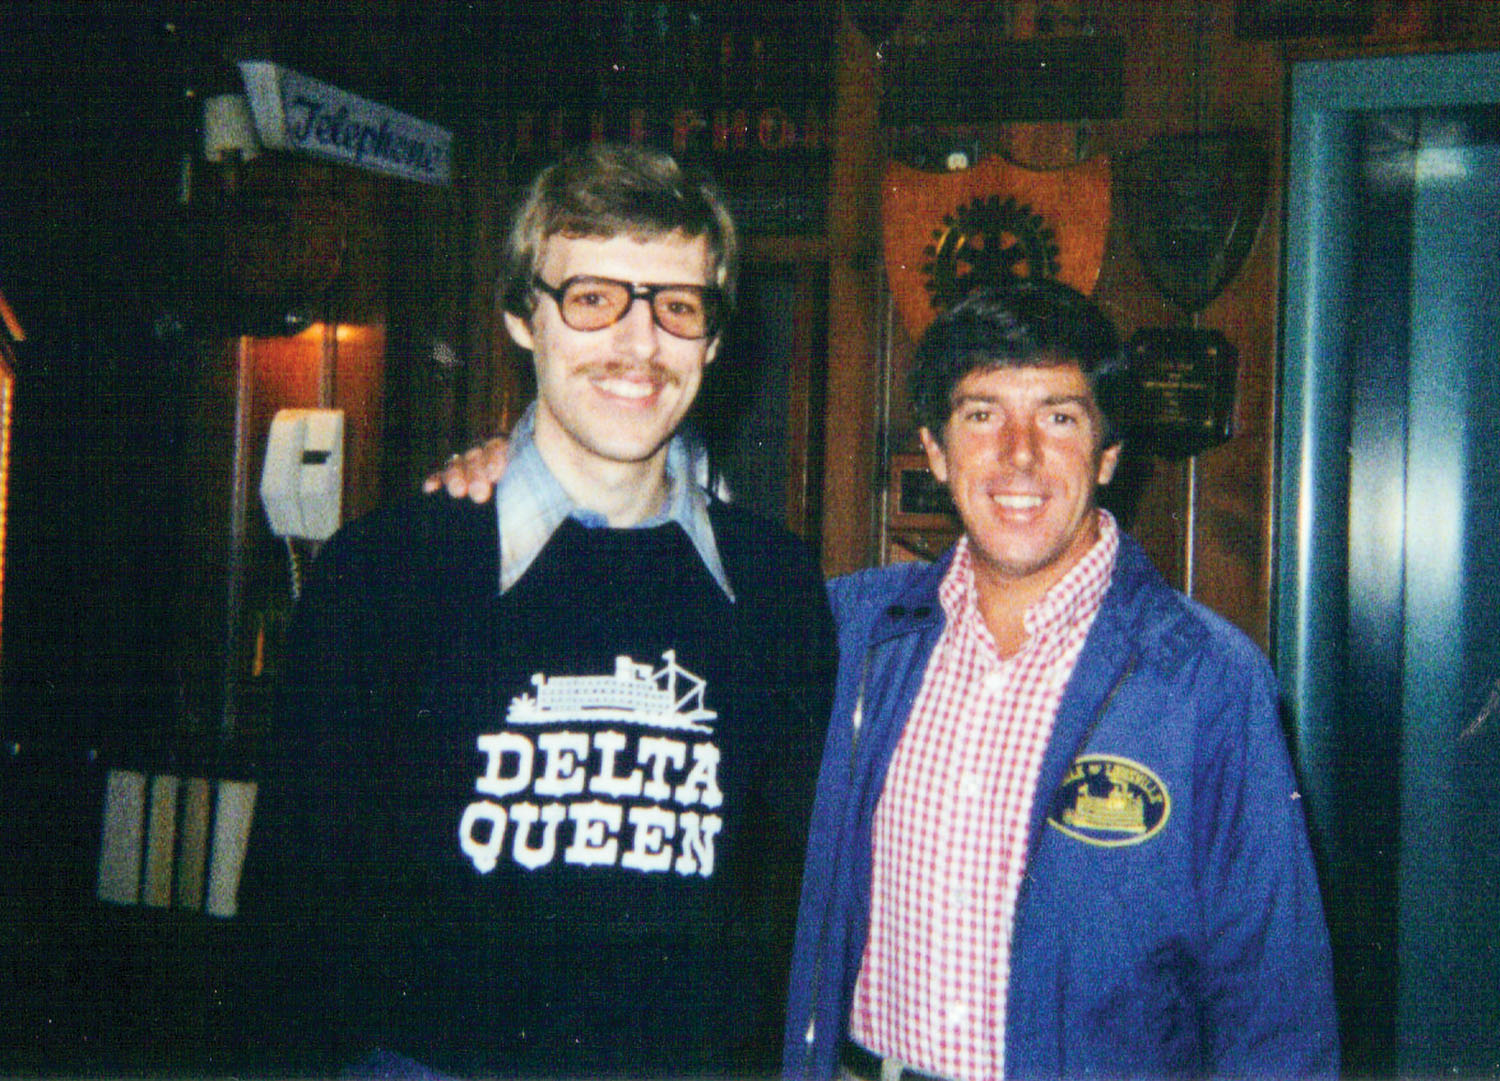 Student and mentor: Keith Norrington and Capt. Doc Hawley at the Sons & Daughters of Pioneer Rivermen meeting, Marietta, Ohio, 1979. (Keith Norrington collection)